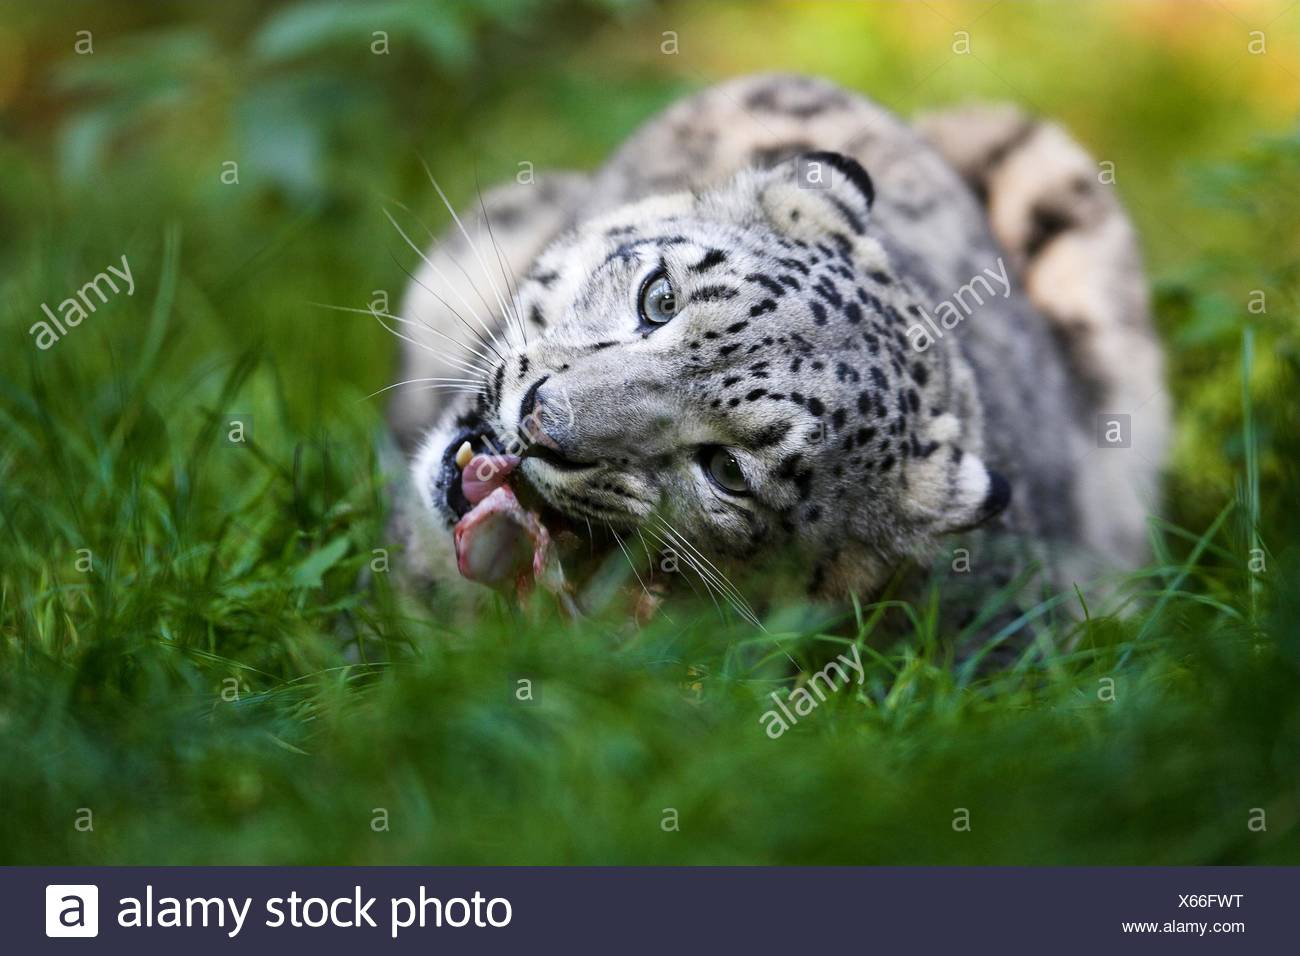 Eating snow leopard Photo Stock